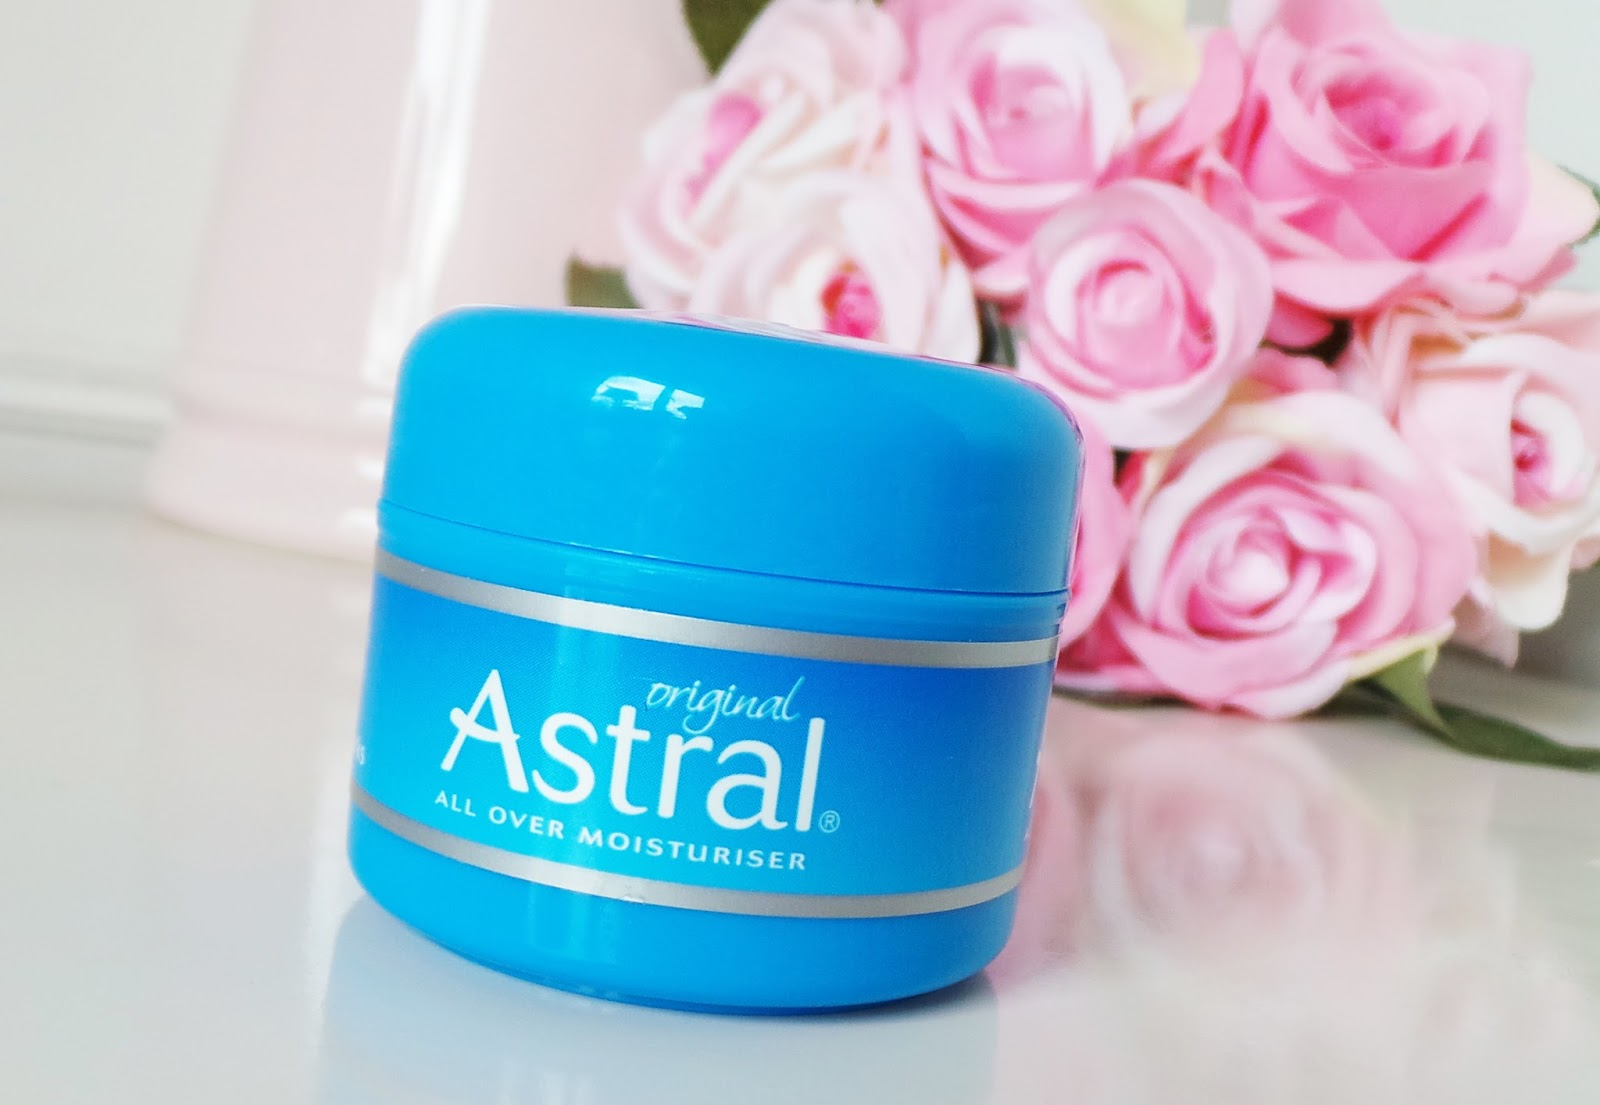 astral original moisturiser, astral all over original moisturiser, astral original moisturiser review, astral review, astral original review, skincare blog, skincare blogger, skincare review, beauty blogger, uk beauty blogger, uk skincare blogger, uk blog,